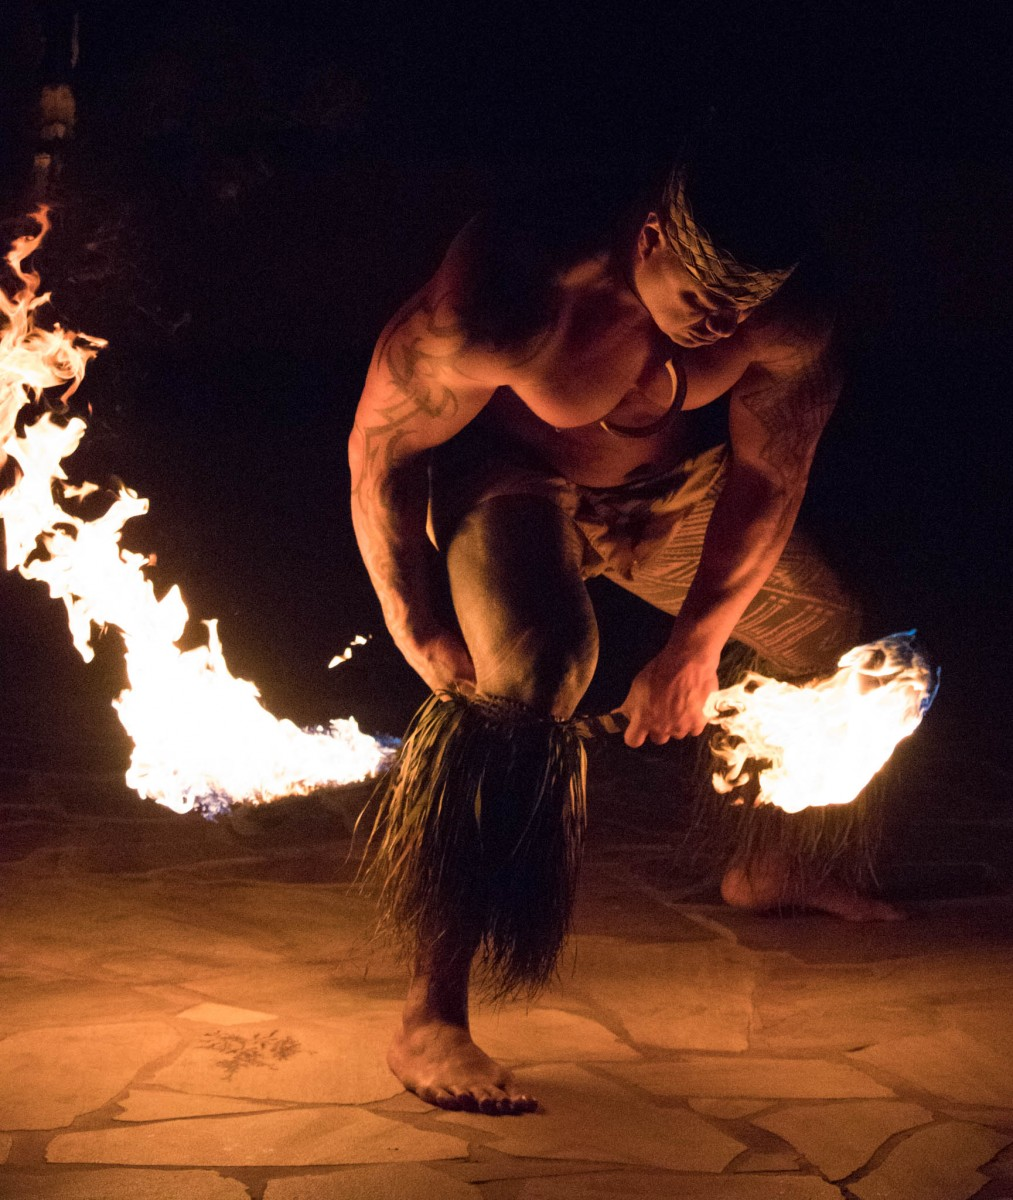 Royal Hawaiian Hotel Luau - Samoan Fire Knife Dancer